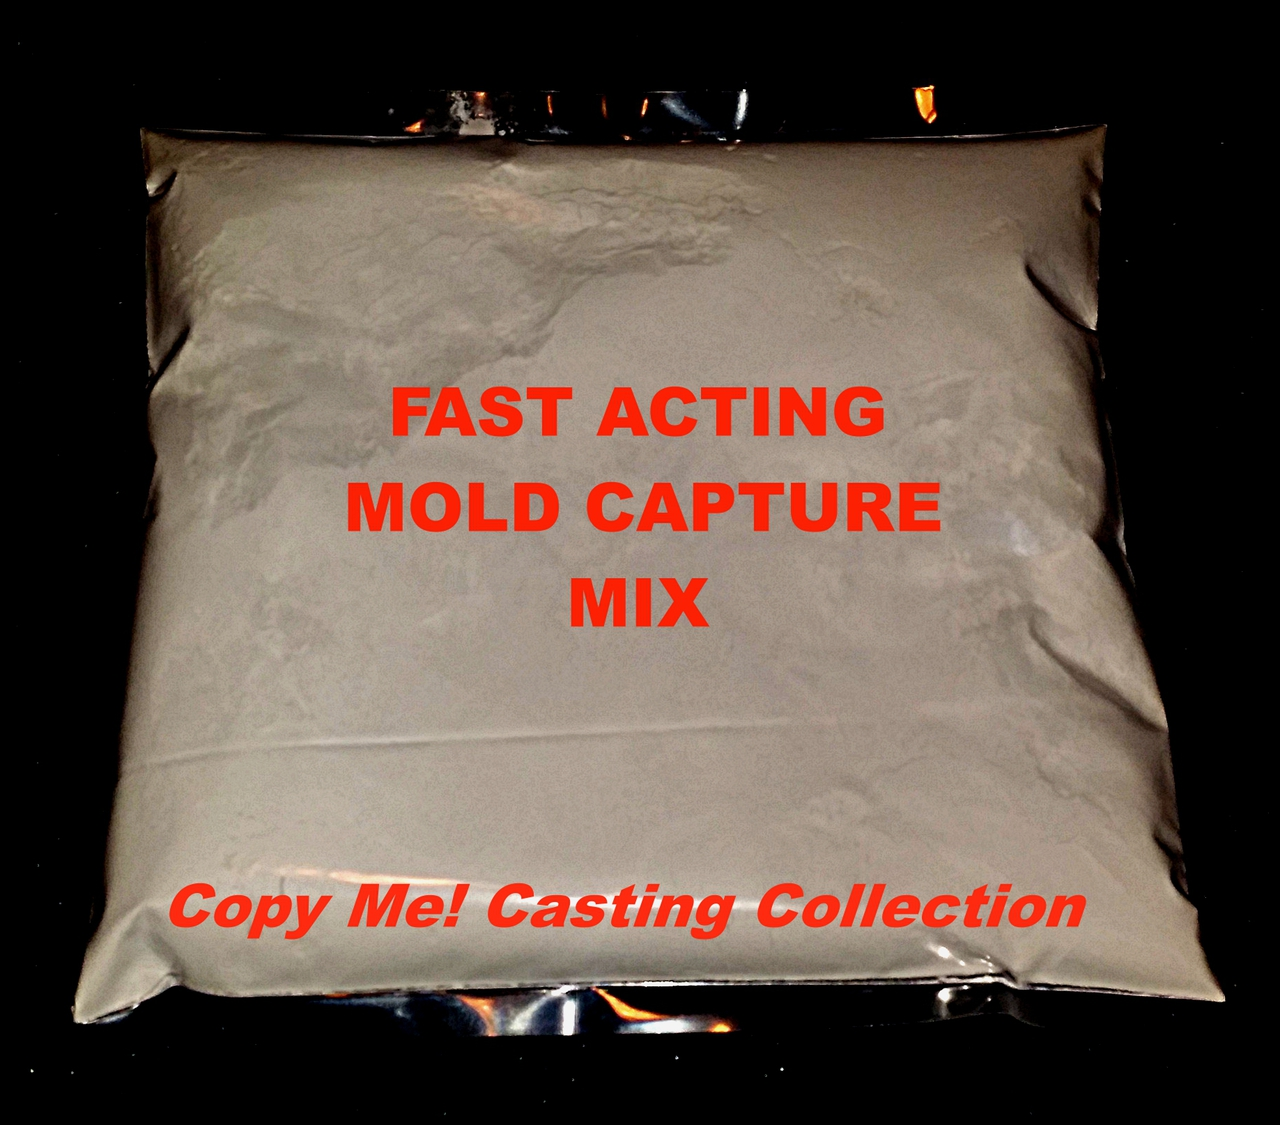 This order contains 1 bag of Fast Acting Mold Capture Mix. It is a refill part of the Copy Me! Penis Casting Ultra Kit. When mixed with water, it creates the imprint of your favorite penis in every detail and takes you to the next step of making a dildo replica of that penis you know and love!